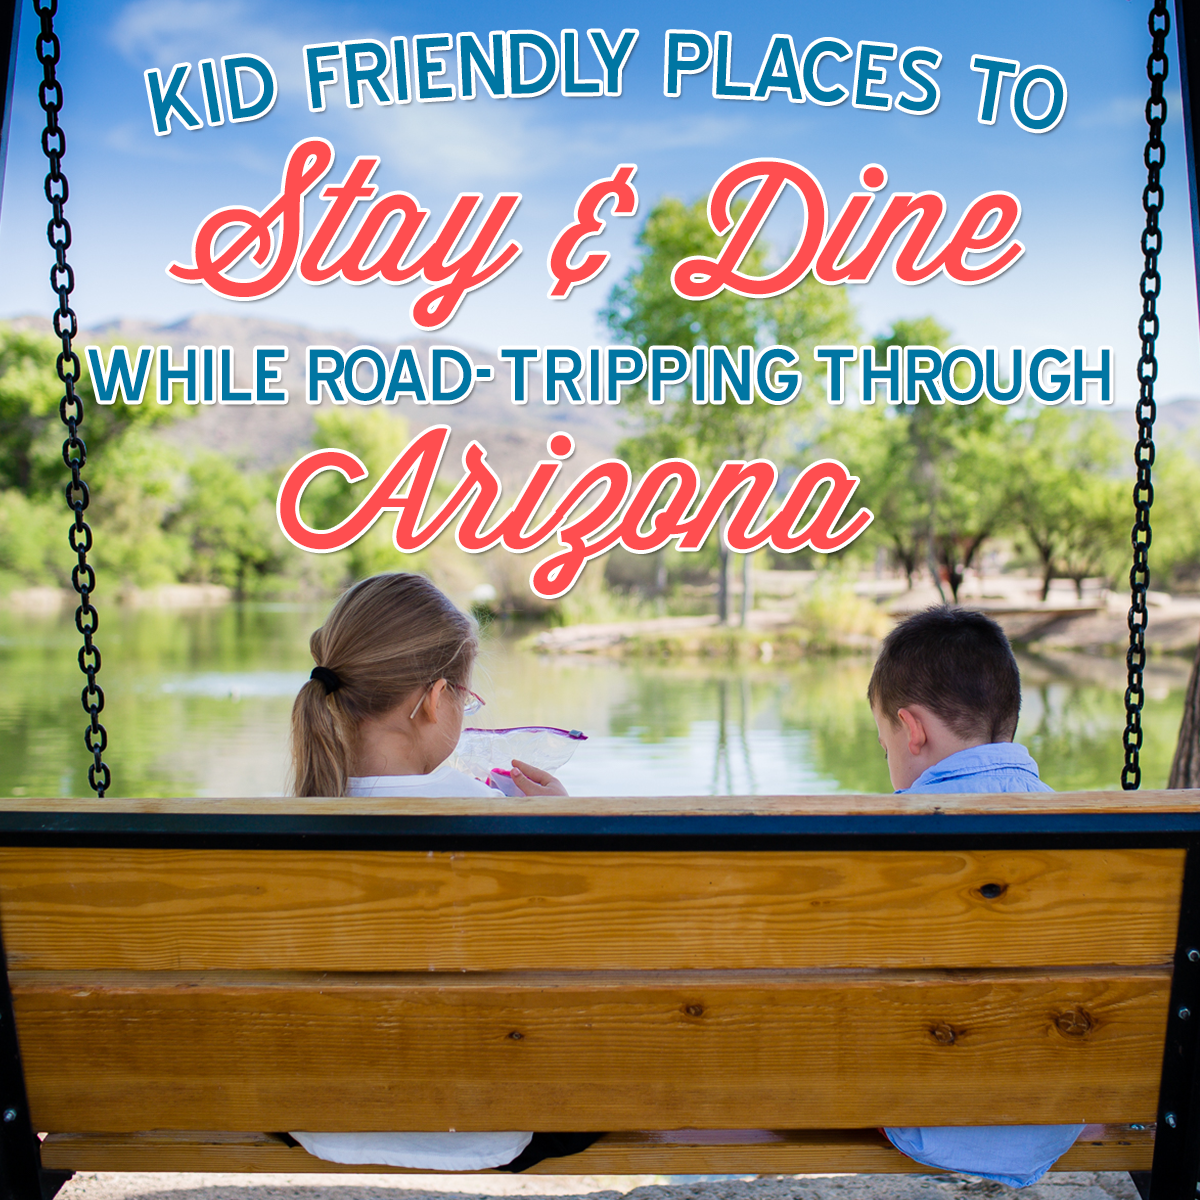 Kid Friendly Backyard Landscaping: Kid Friendly Places To Stay & Dine While Road-tripping